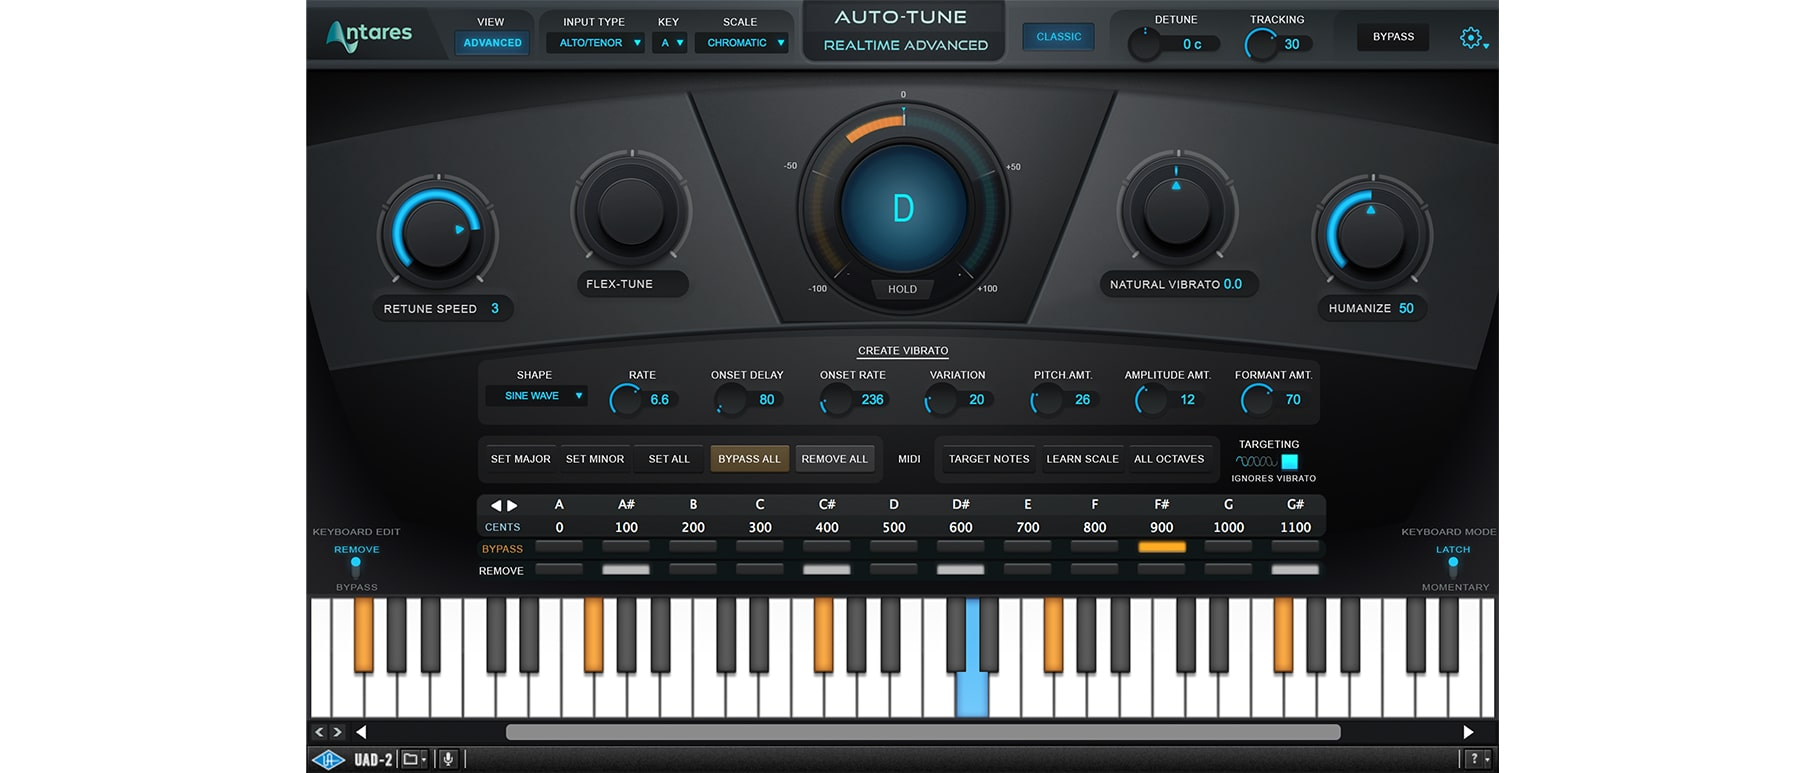 autotune plugin for fl studio 20